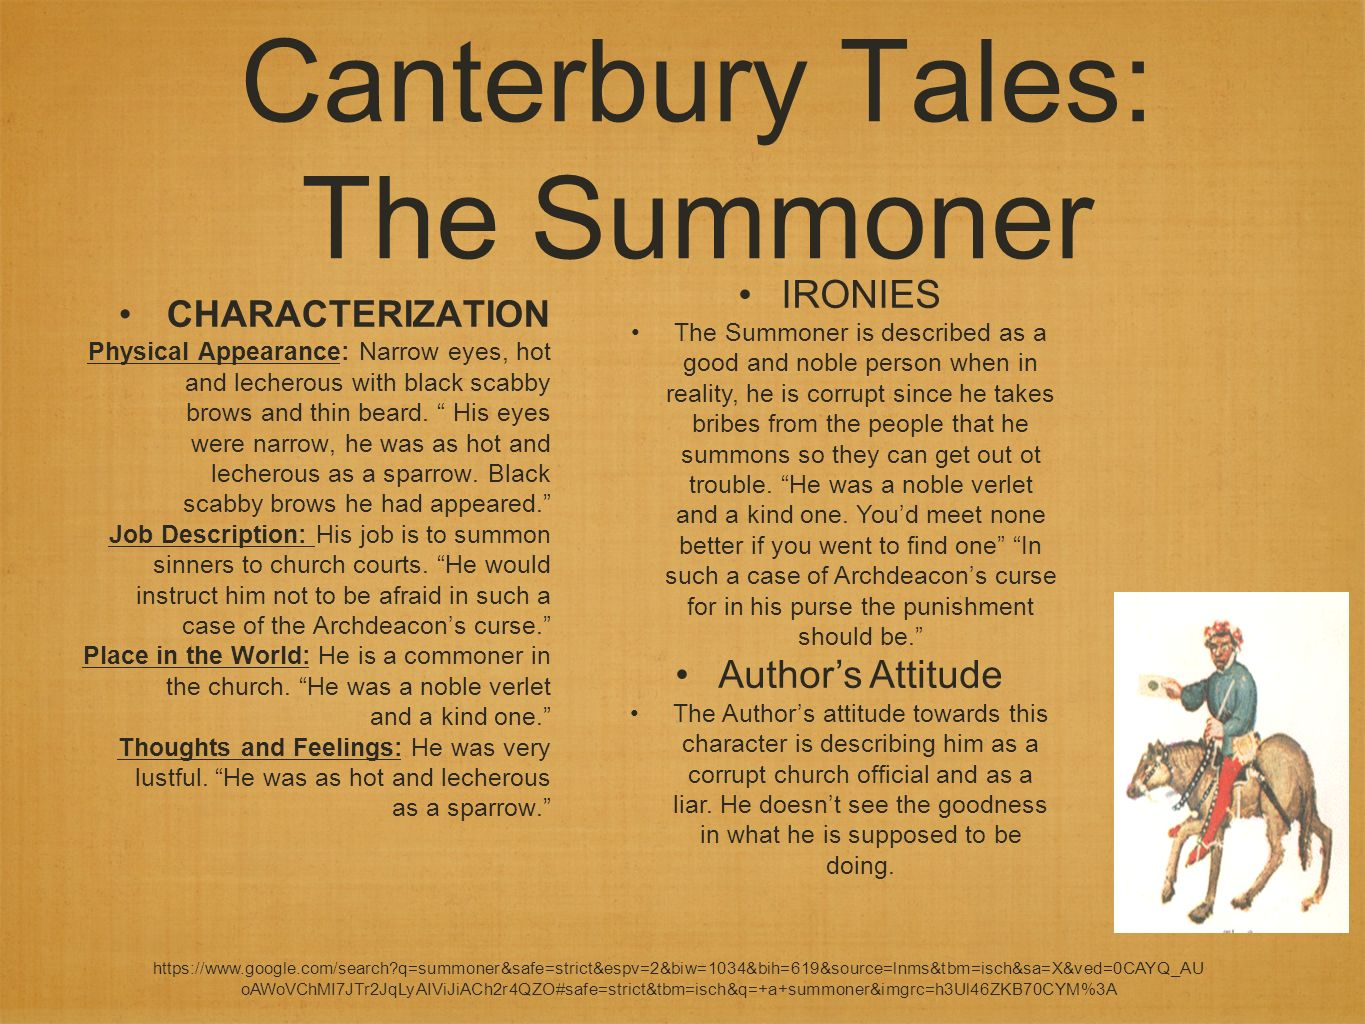 the summoner in the canterbury tales What are the three groups of people during the time period that the canterbury tales was written feudal system, religious life, middle class  which tale contains the summoner, the yeoman, and an old widow the friar's tale what is a yeoman  canterbury why does chaucer write the canterbury tales to satirize women, greed, and religion.